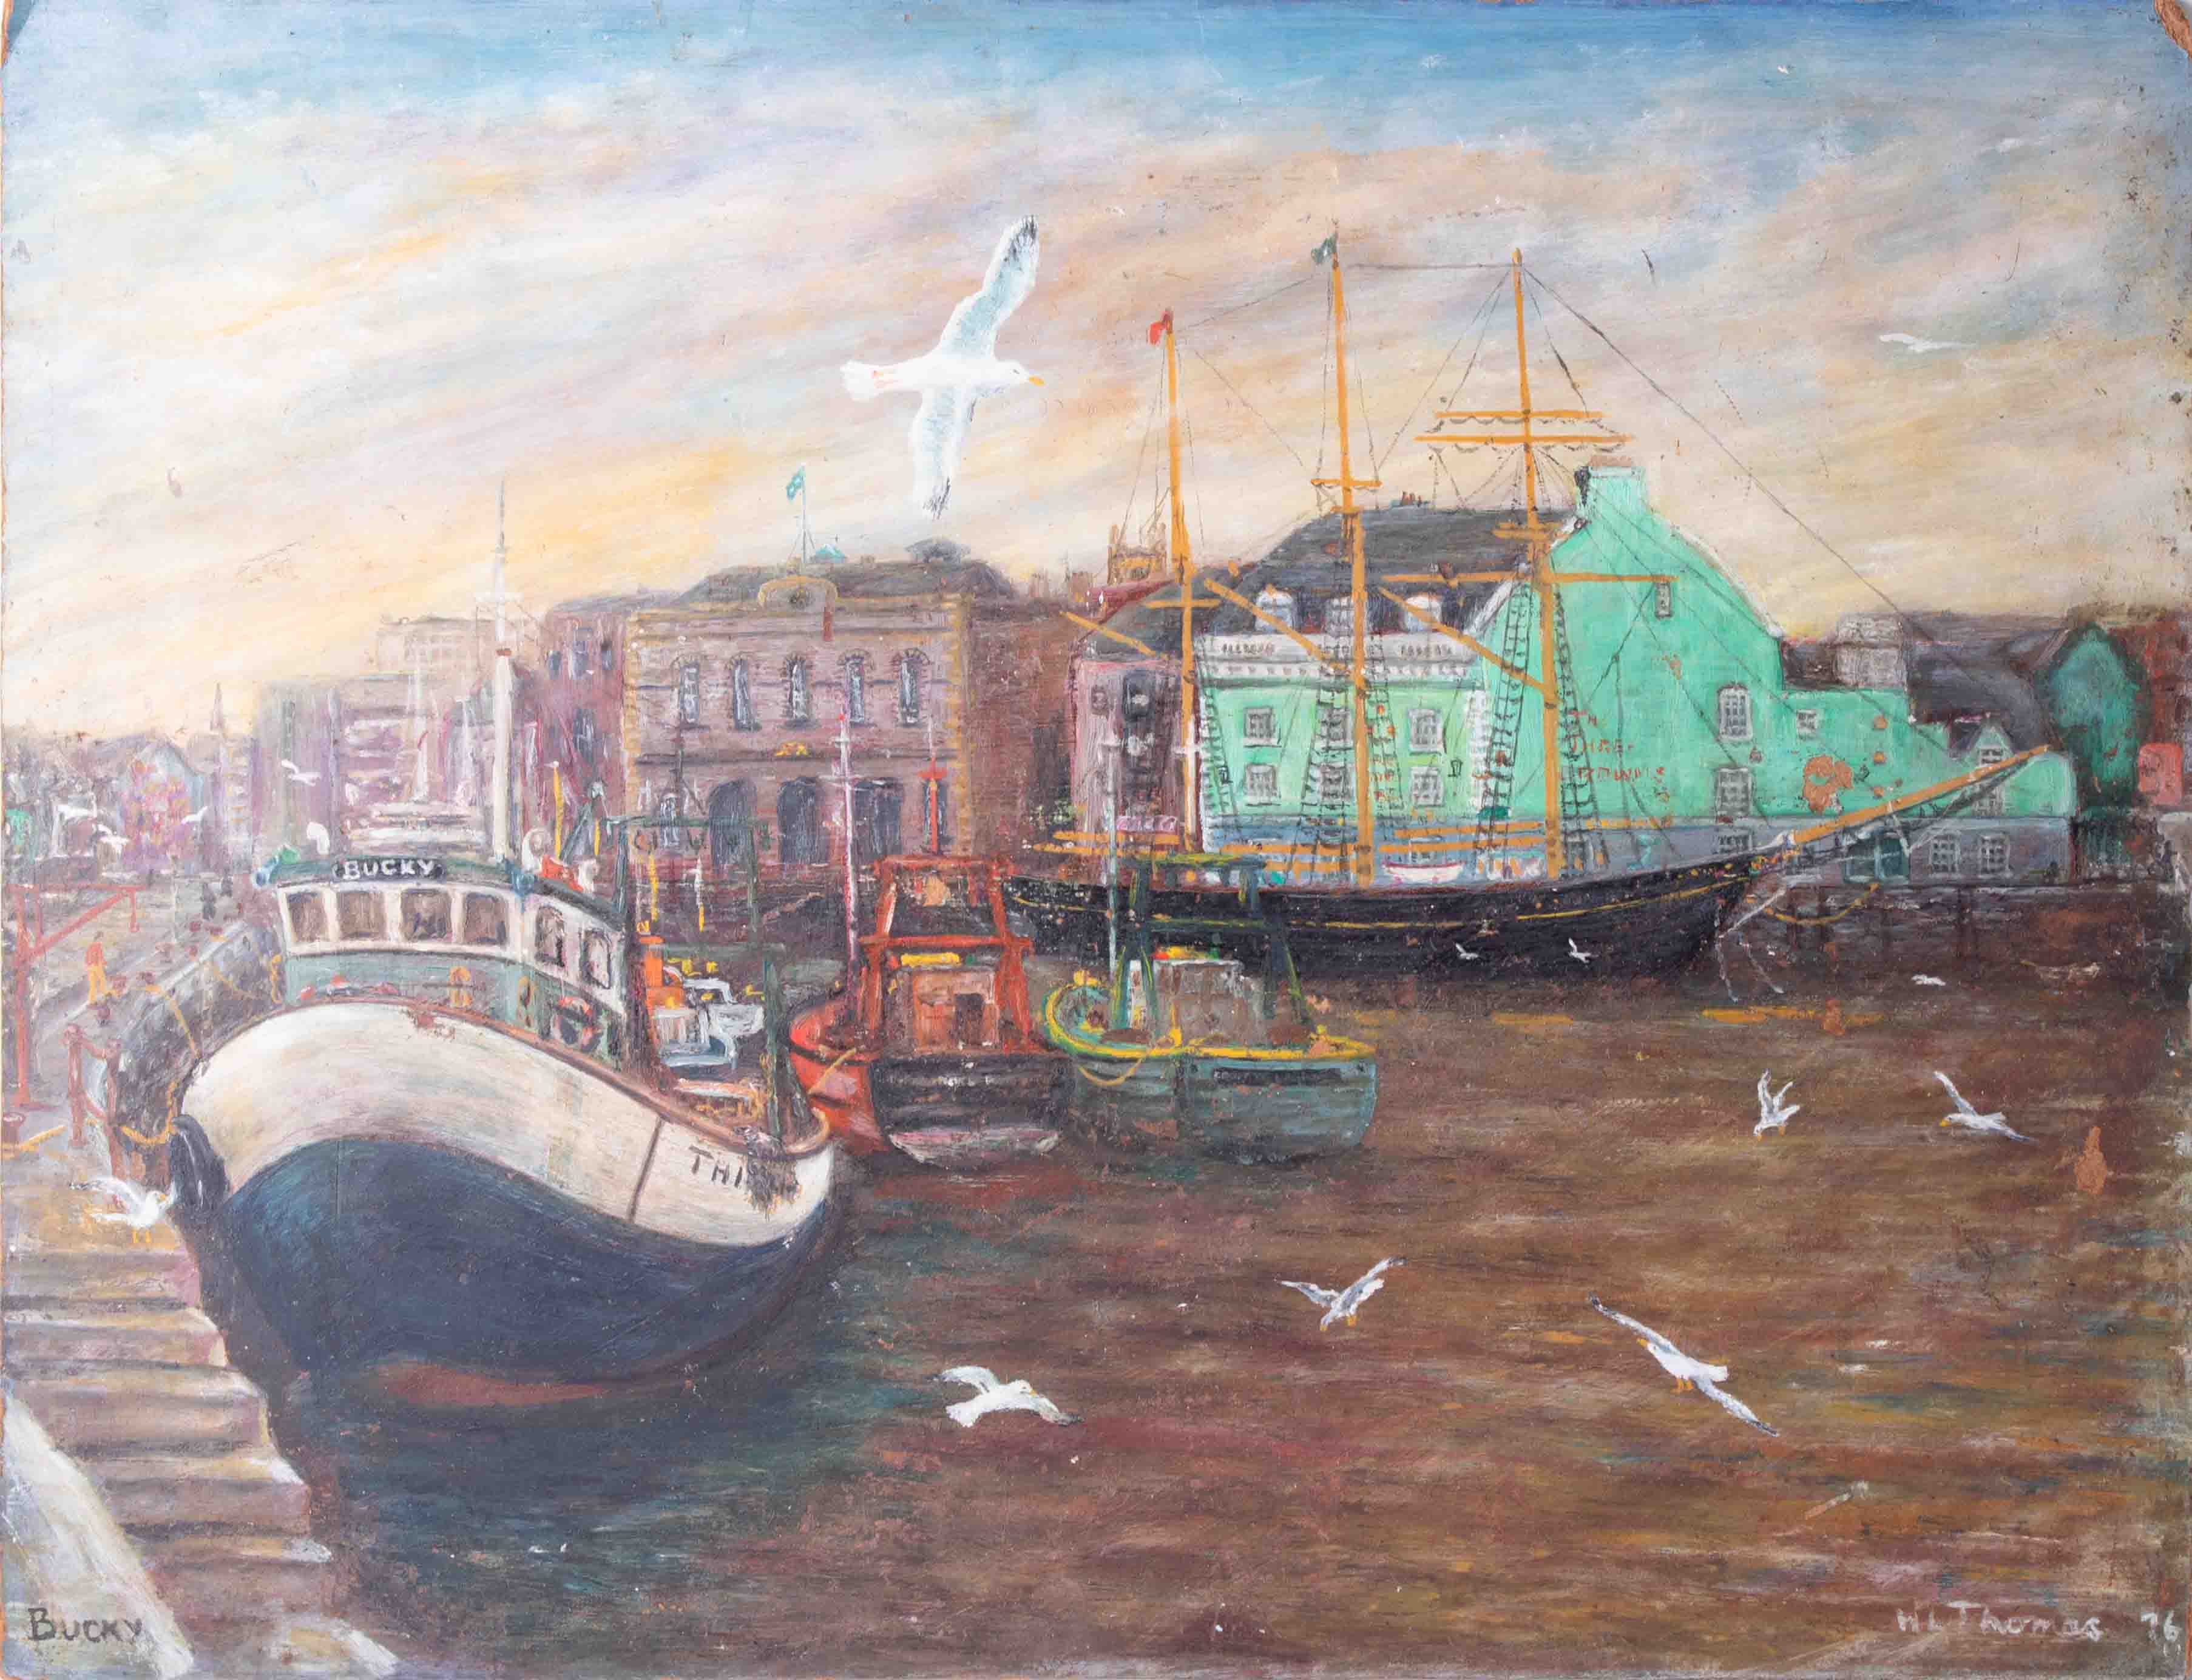 W.L.Thomas, oil on board titled 'Artist On The Steps, Sutton Harbour, Plymouth' also 'Bucky' with - Image 2 of 4